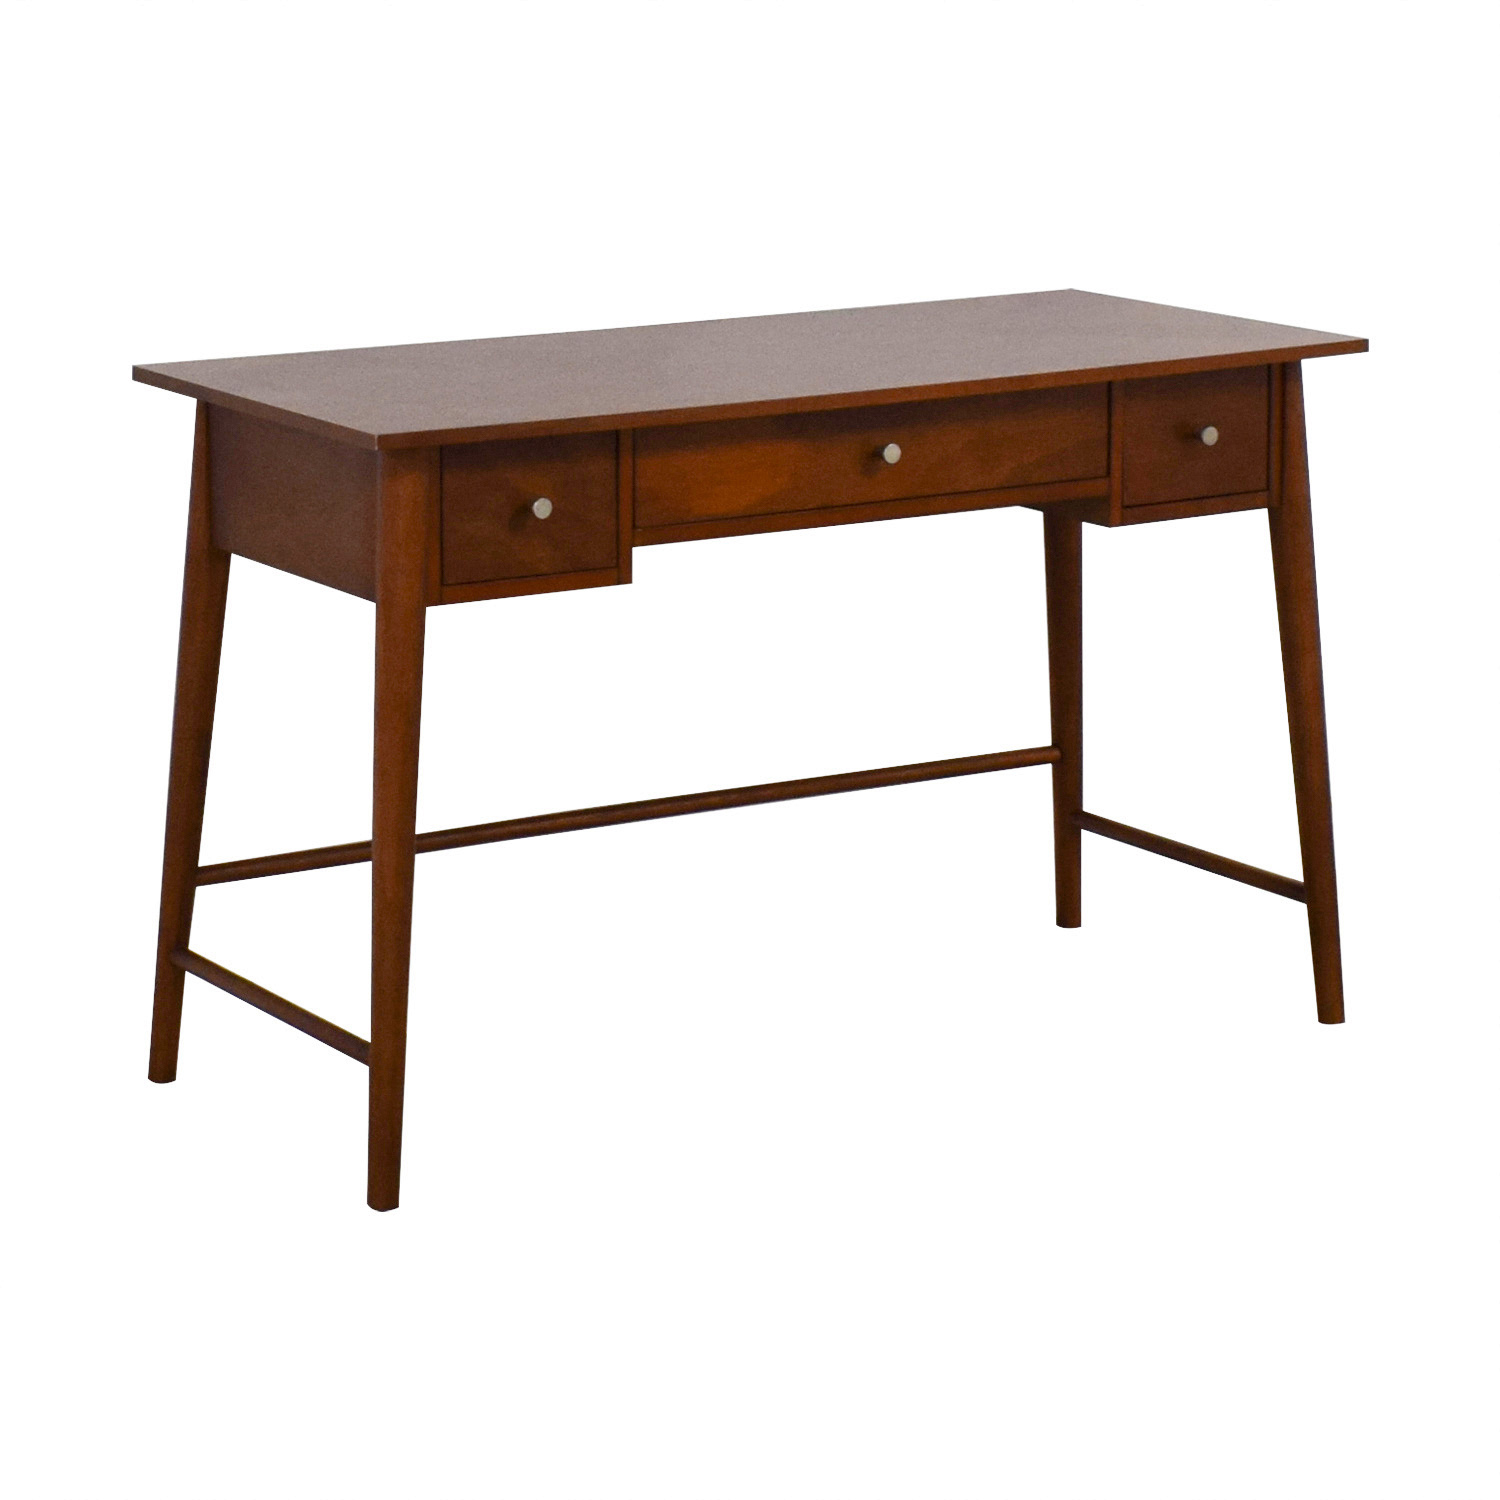 47% OFF - Project 47 Target Project 47 Mid Century Desk / Tables